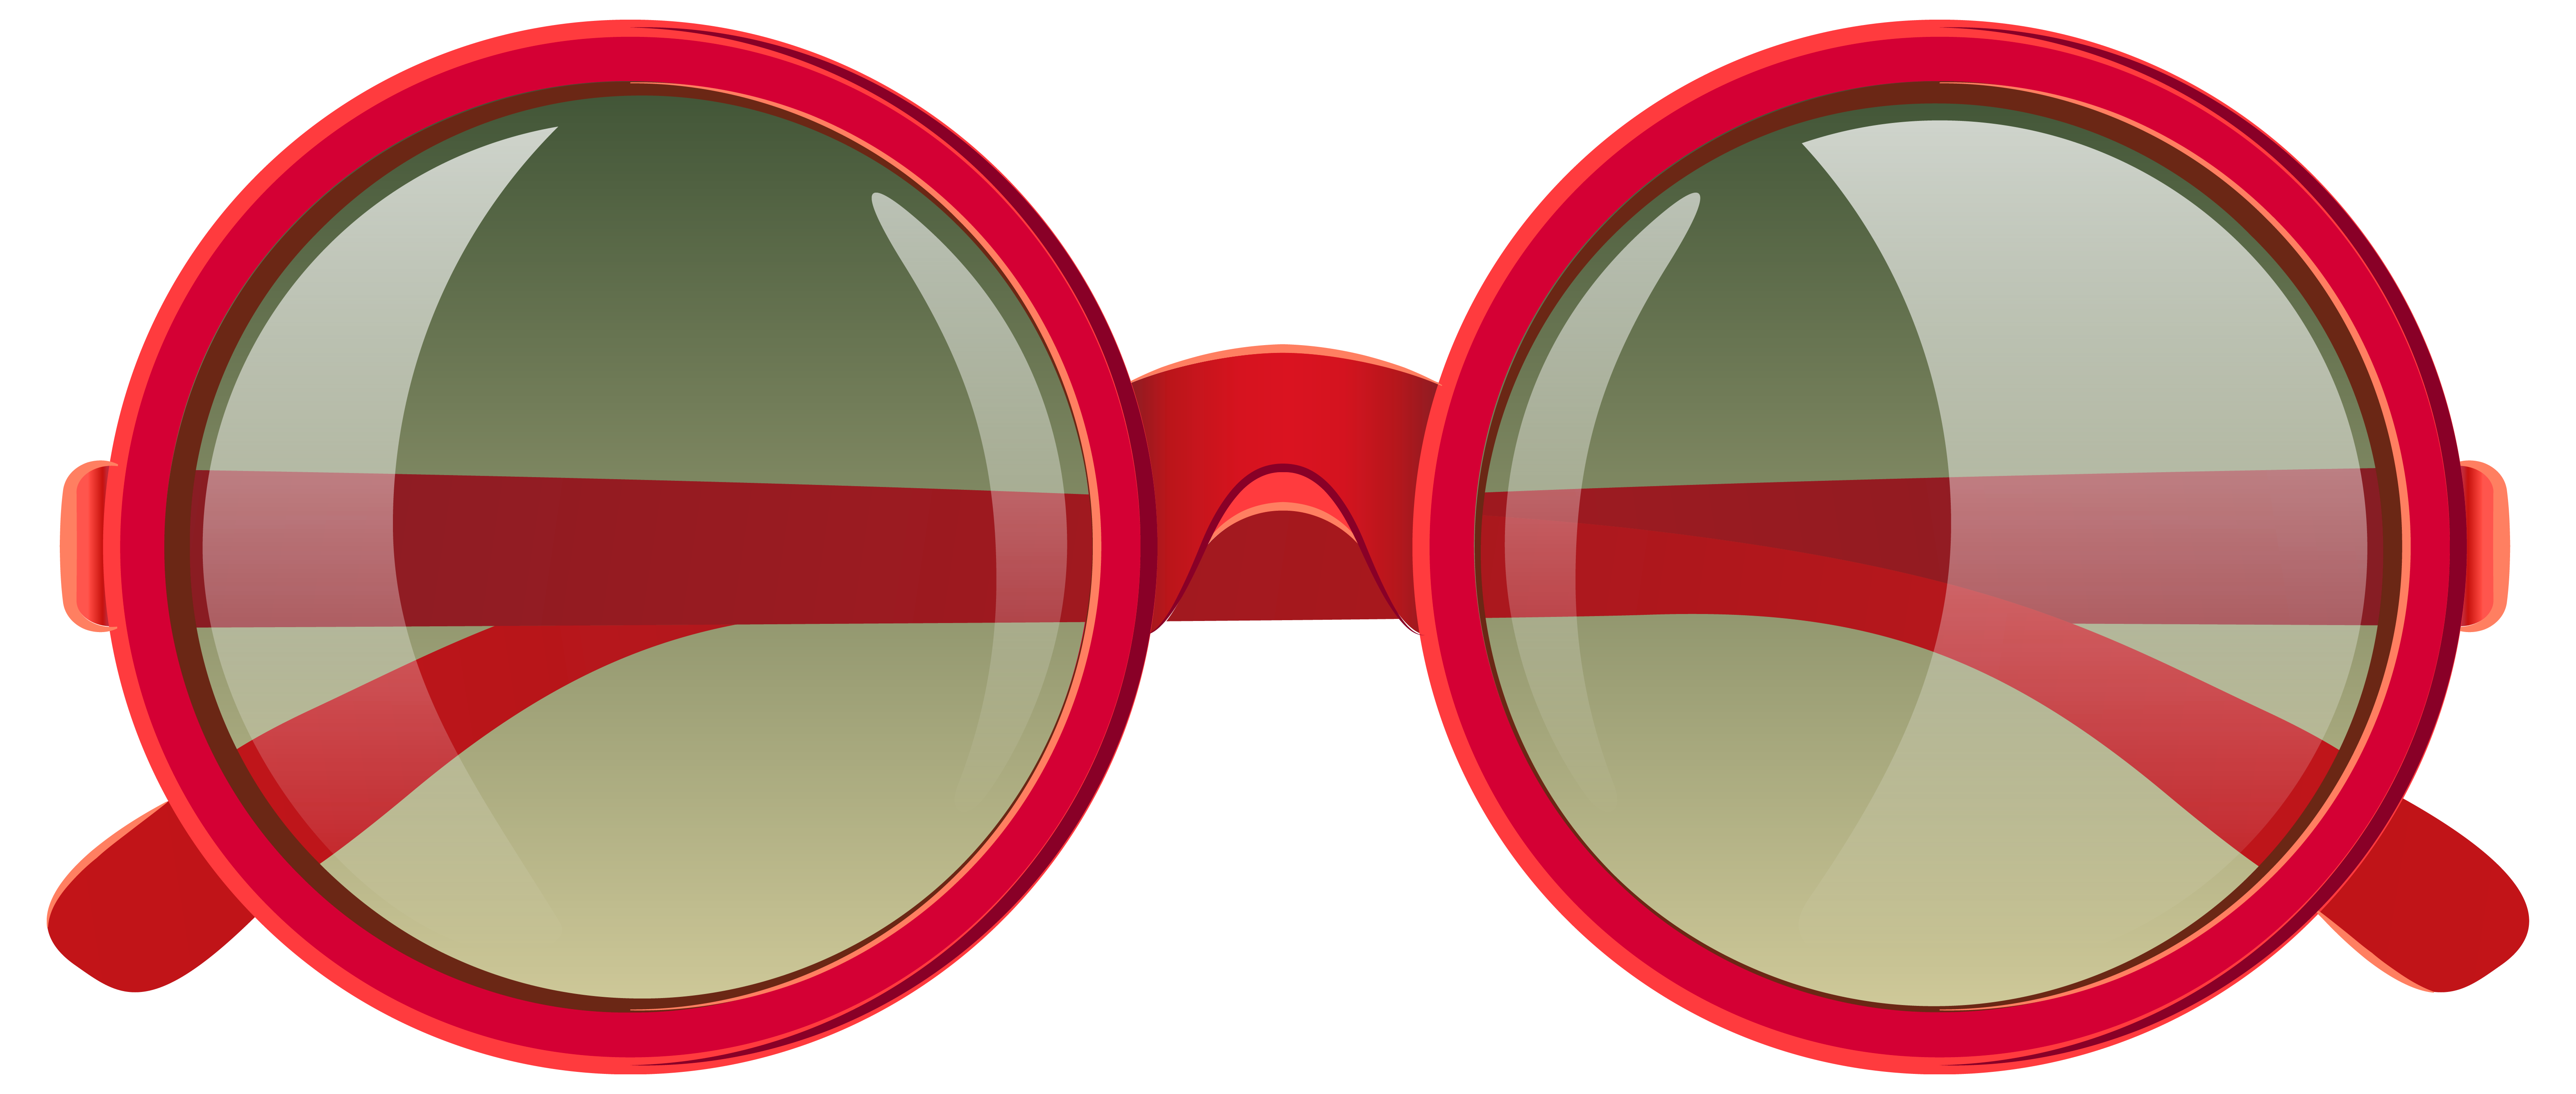 Free Sunglasses PNG Transparent Images, Download Free Clip Art, Free.